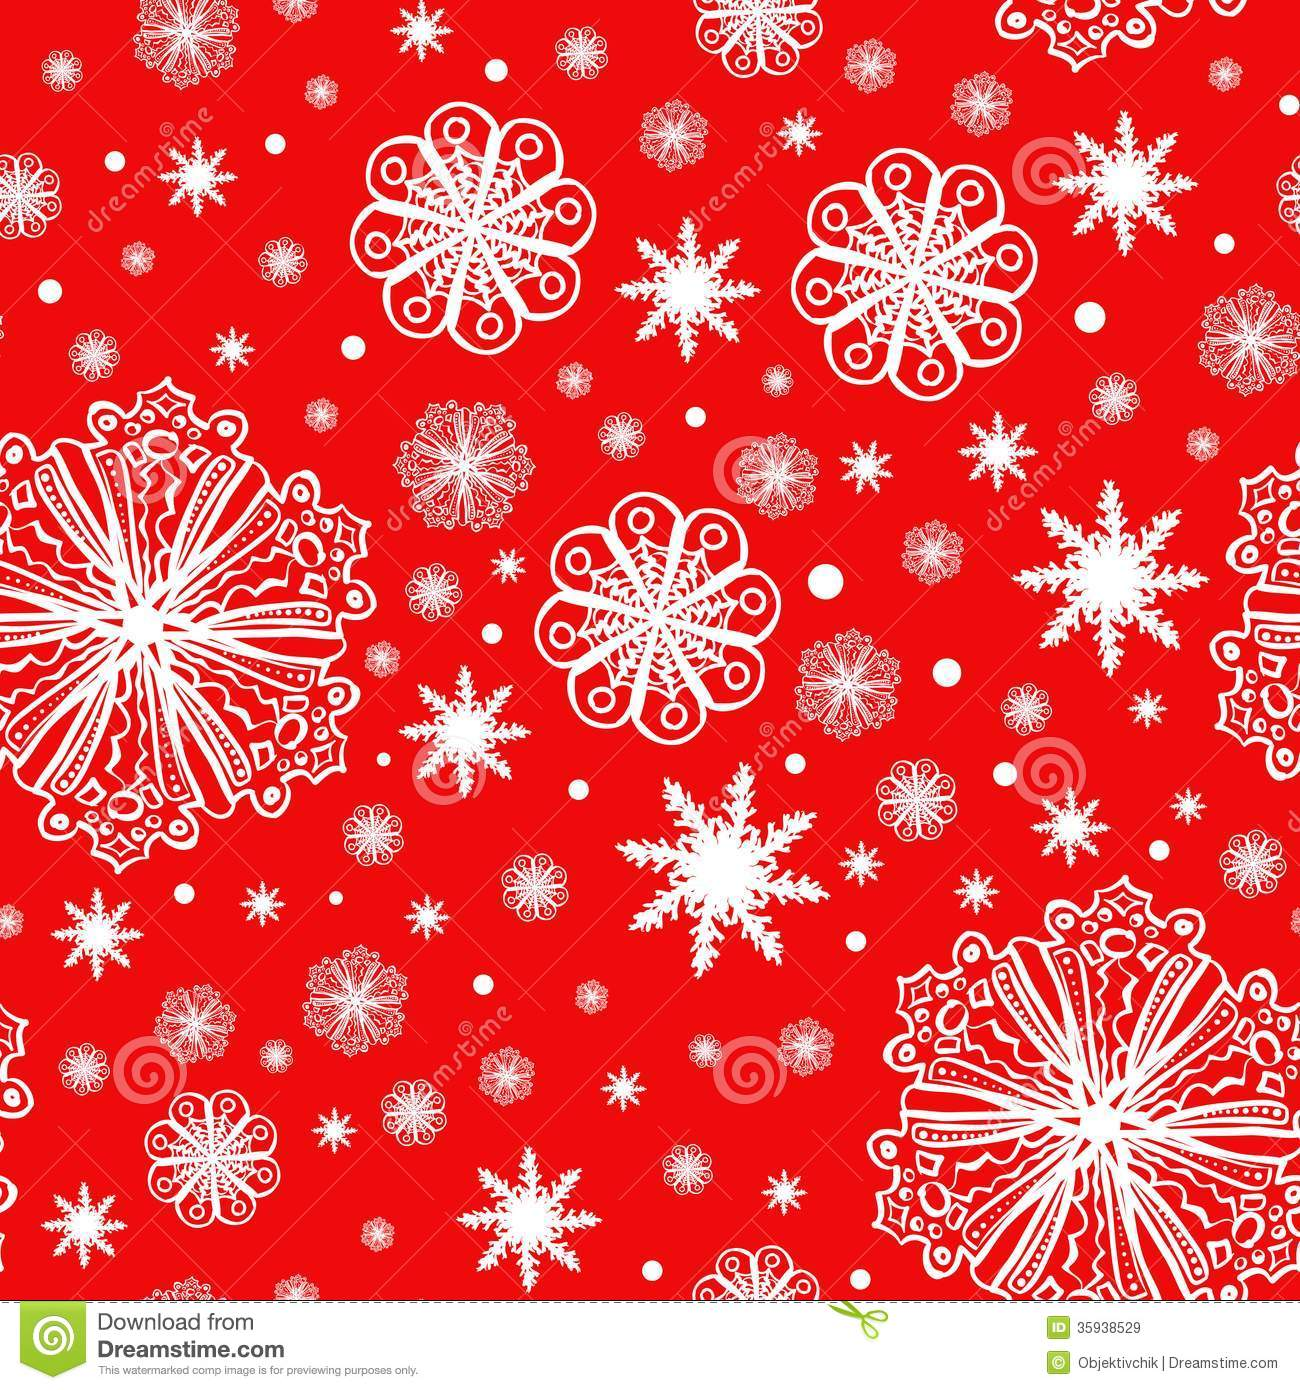 Christmas snowflakes on red seamless pattern stock vector